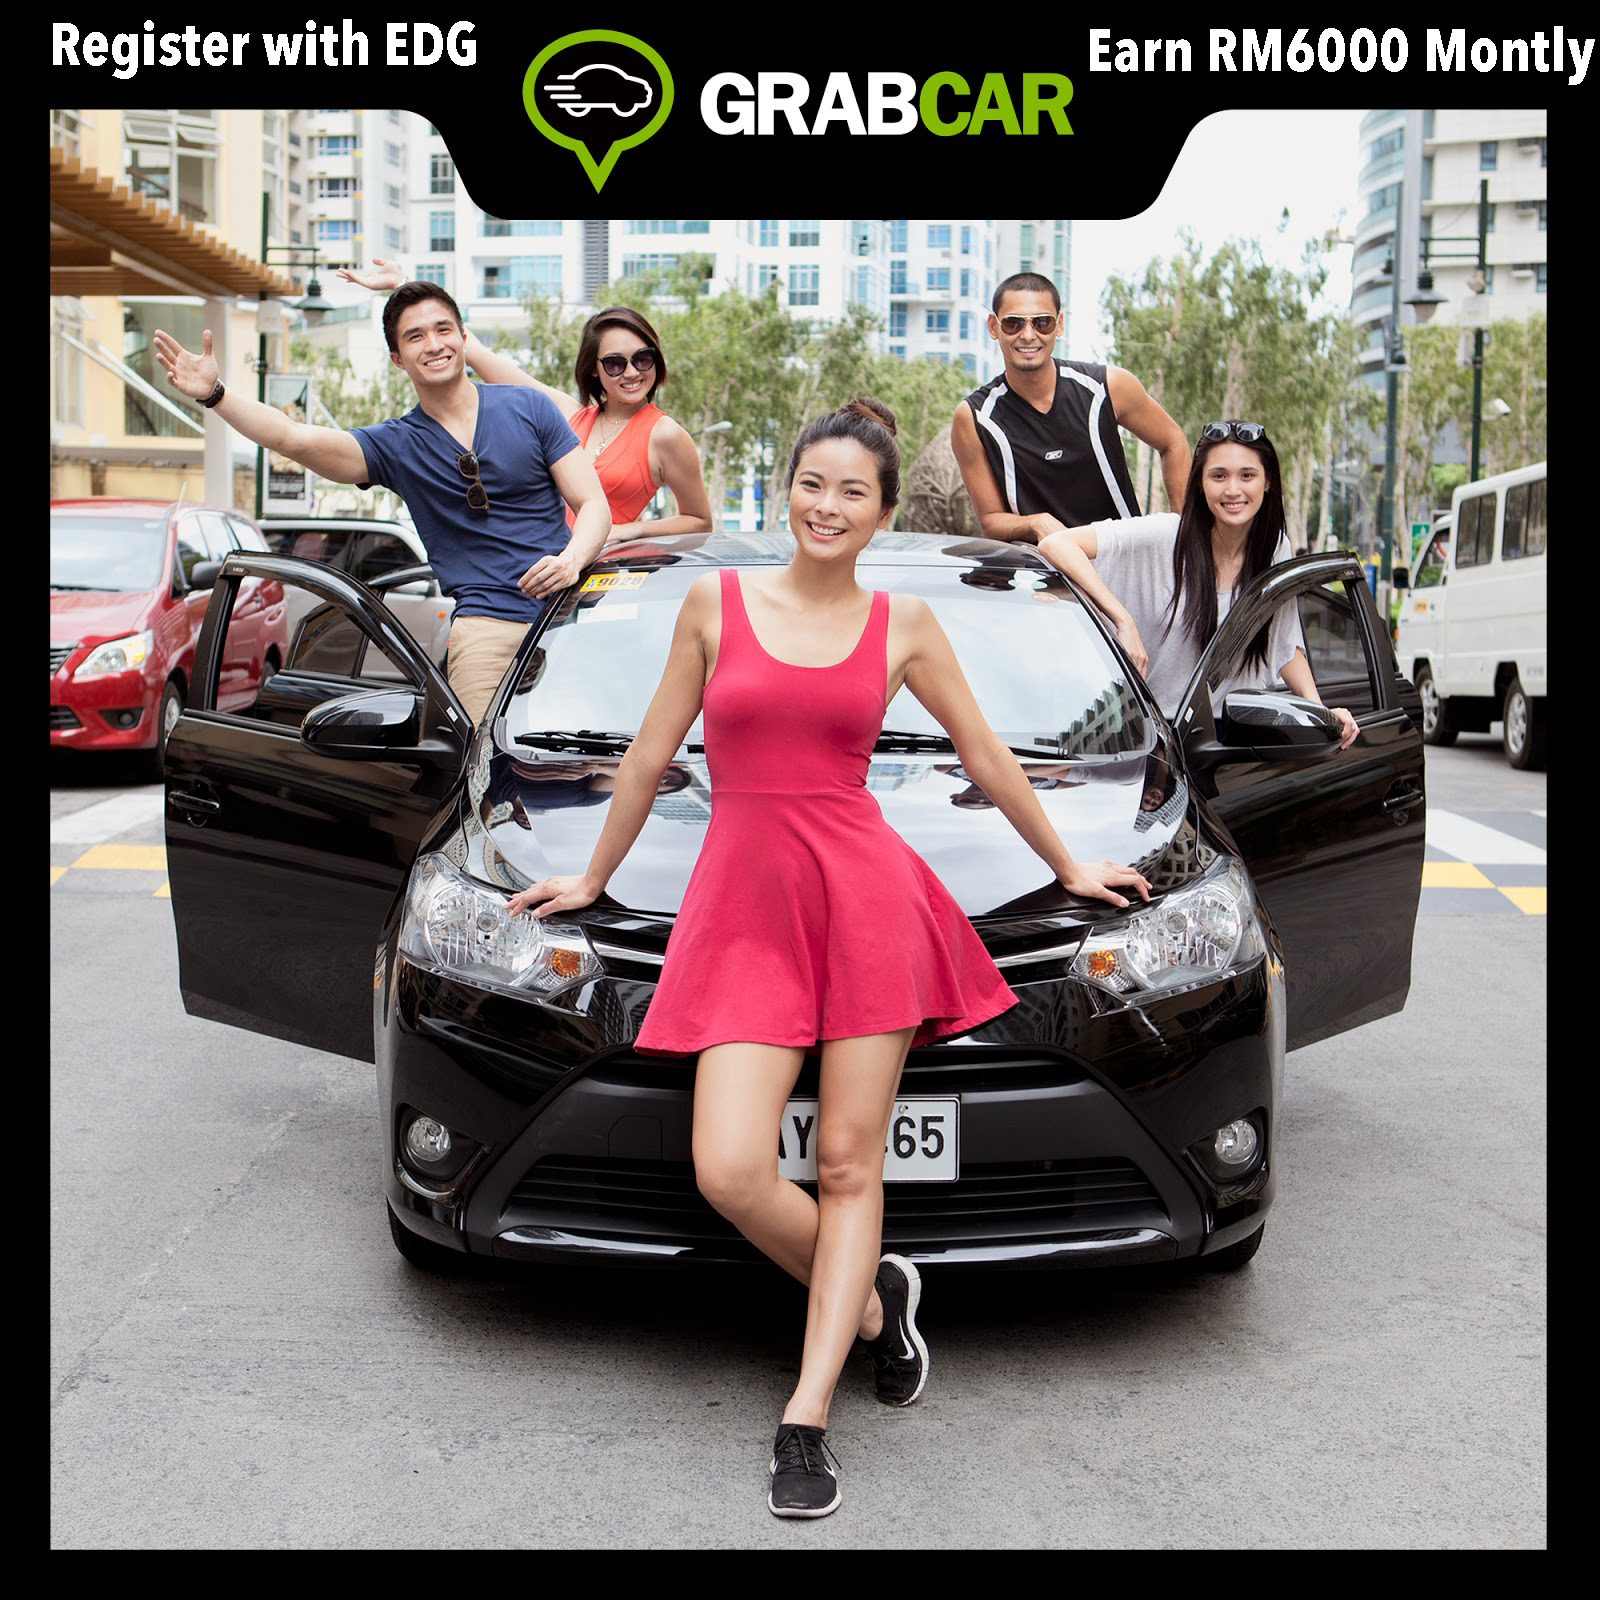 Grabcar – Full-time vs Part-time